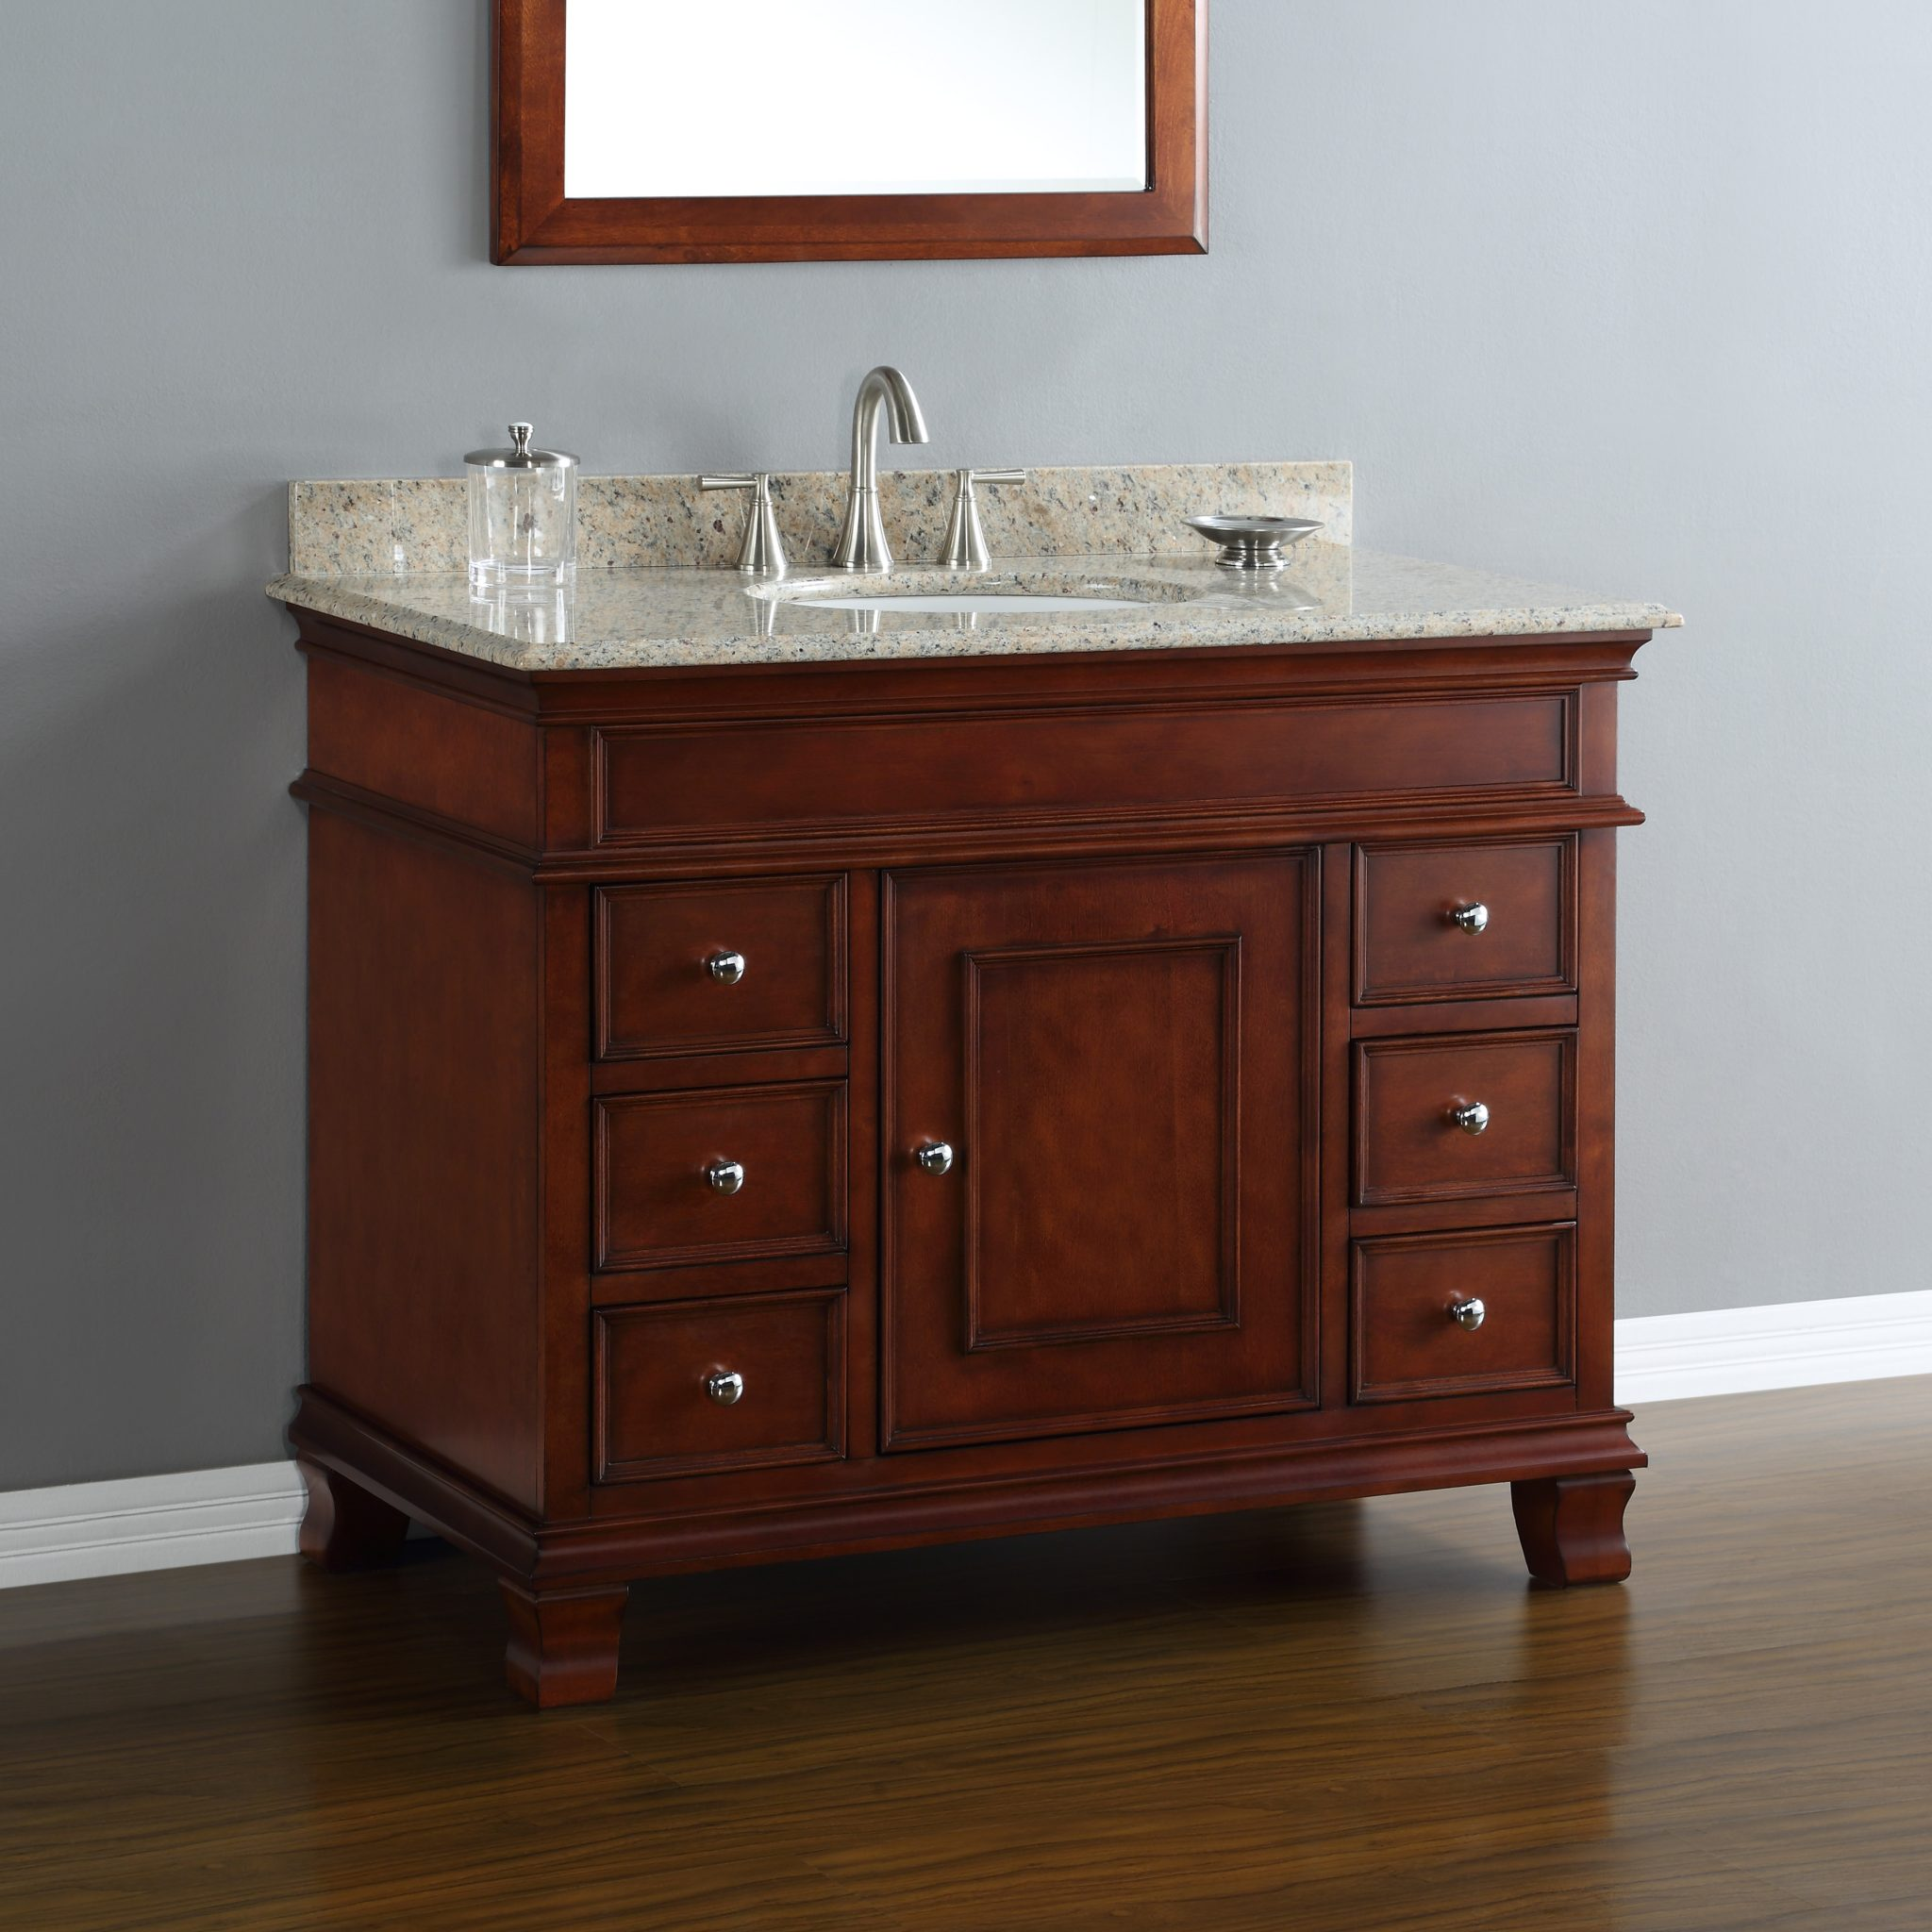 Manhattan 42 center sink vanity mission hills furniture - Bathroom vanities nebraska furniture mart ...